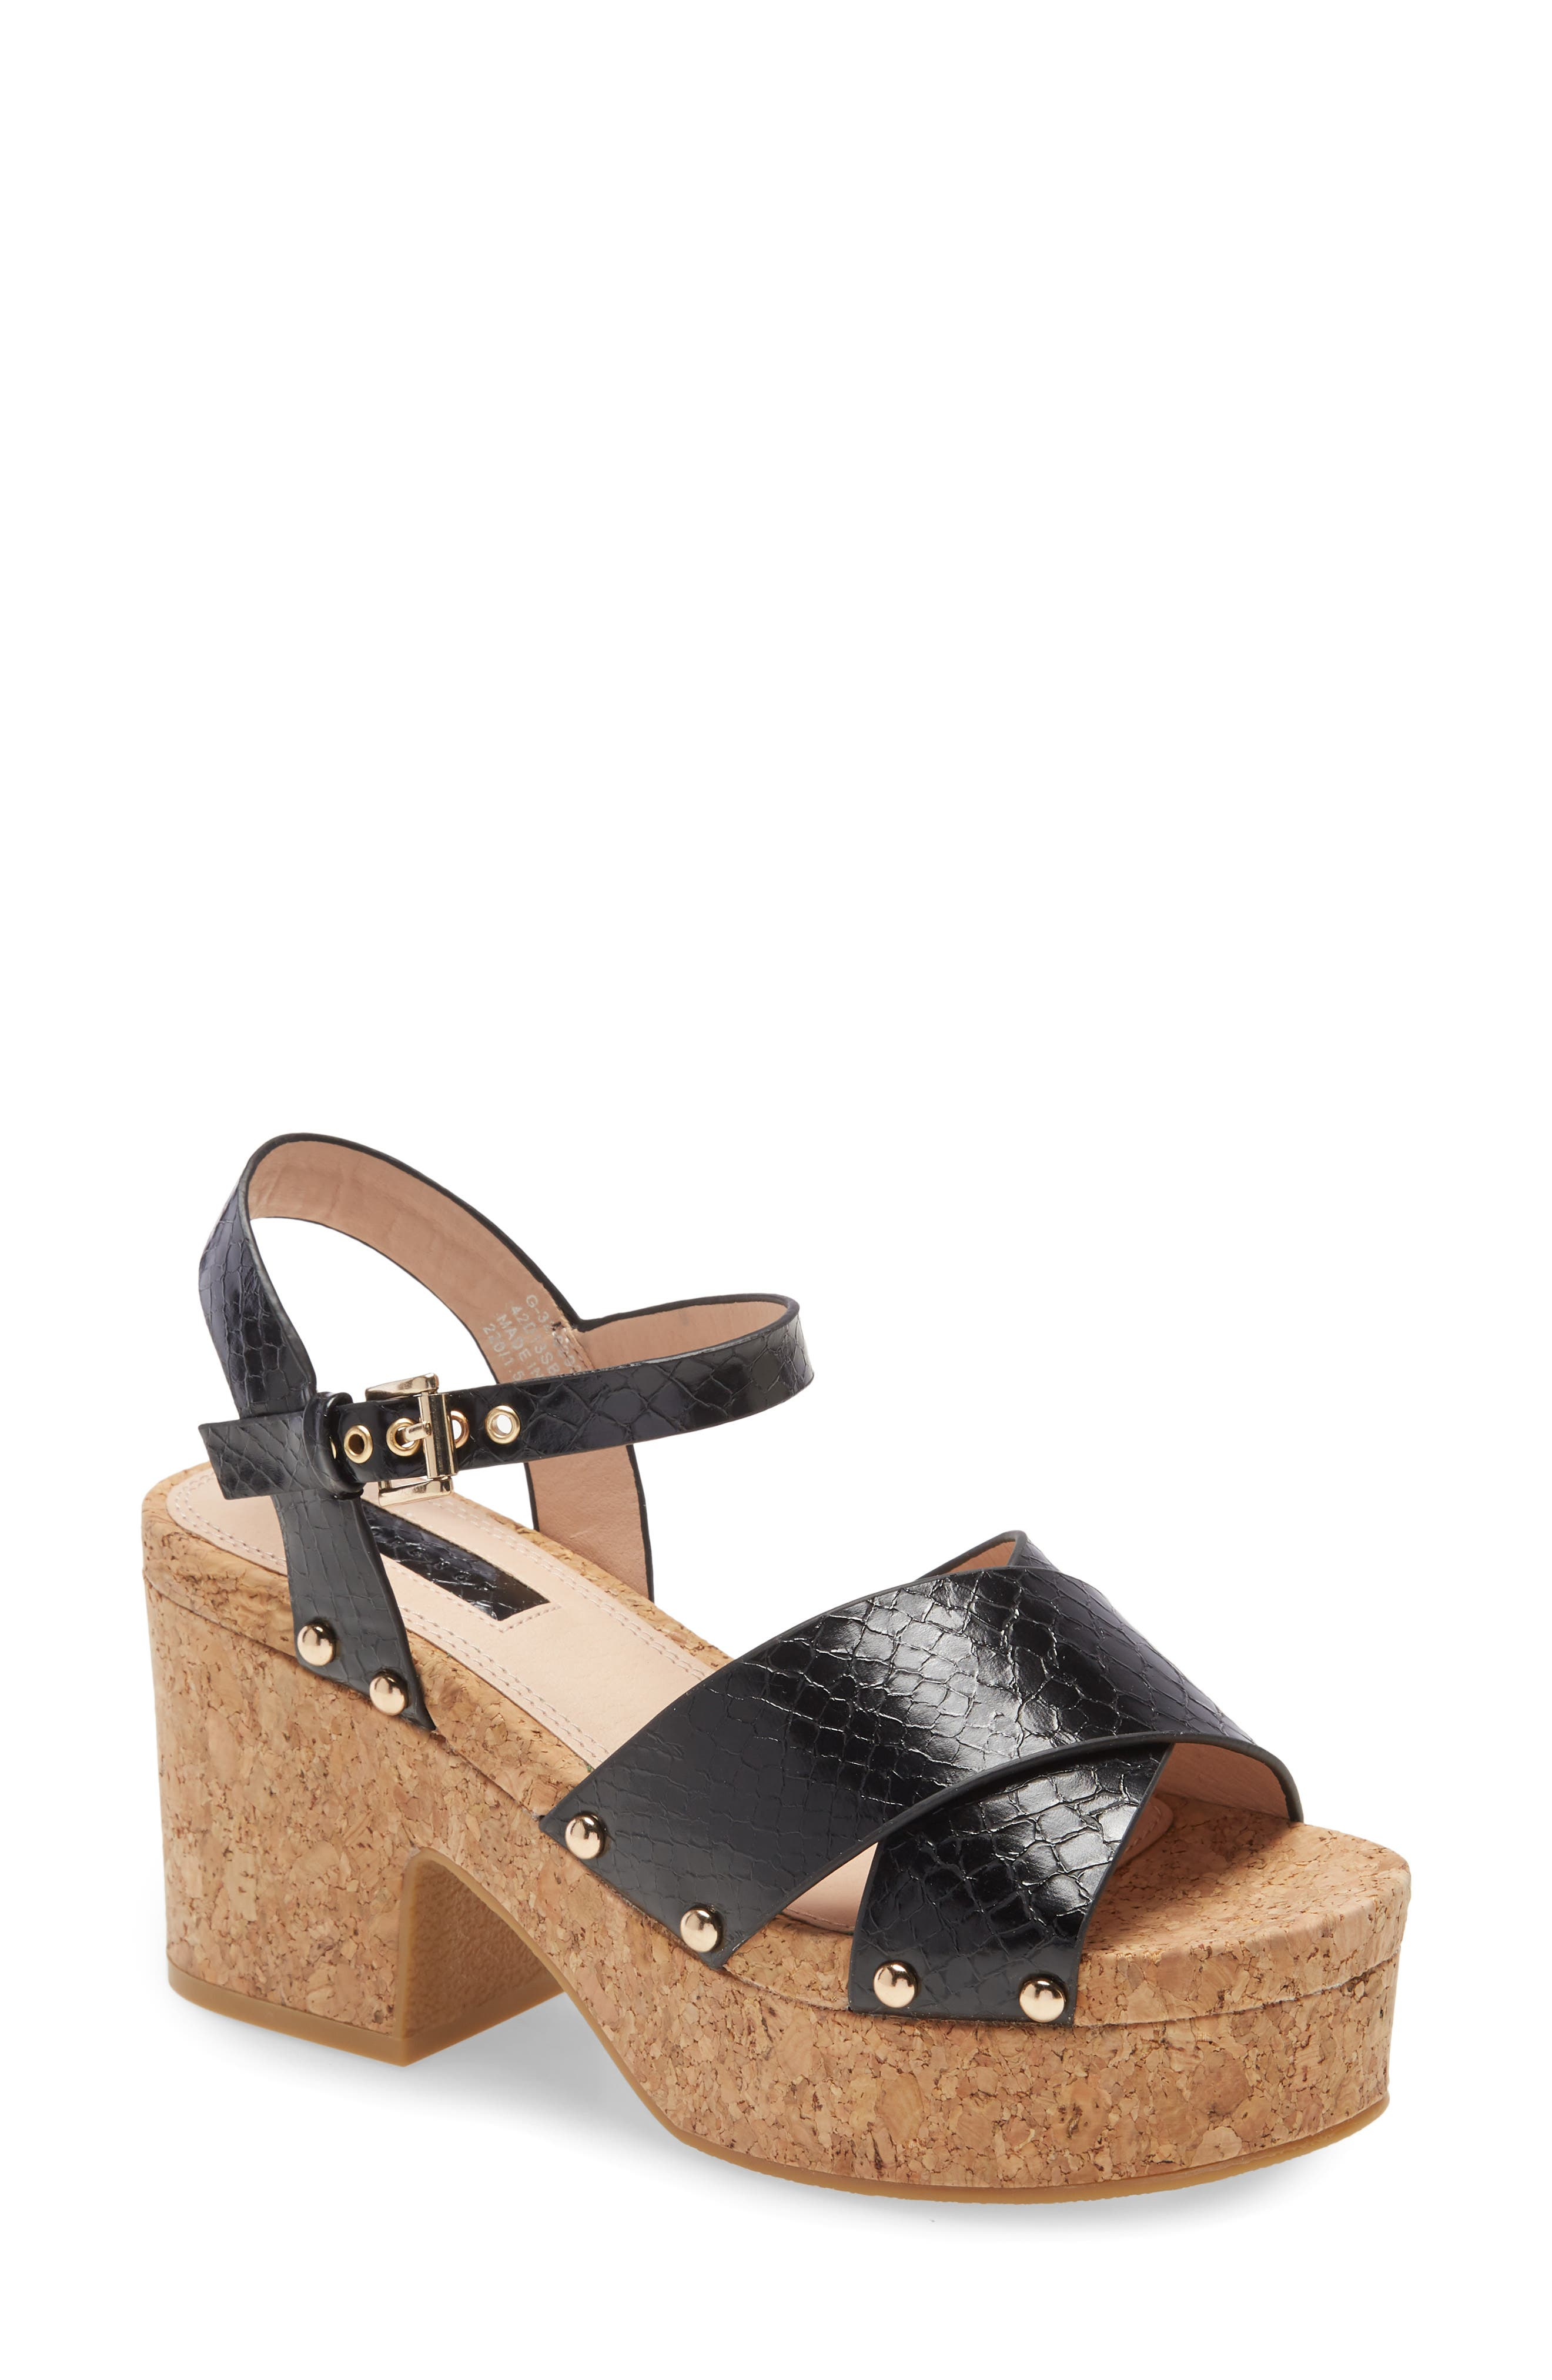 A cork-textured platform ramps up to a chunky block heel under a sandal that kicks up its groovy-retro vibe even further with bands of snakeskin-stamped straps. Style Name: Topshop Platform Sandal (Women). Style Number: 6084322. Available in stores.